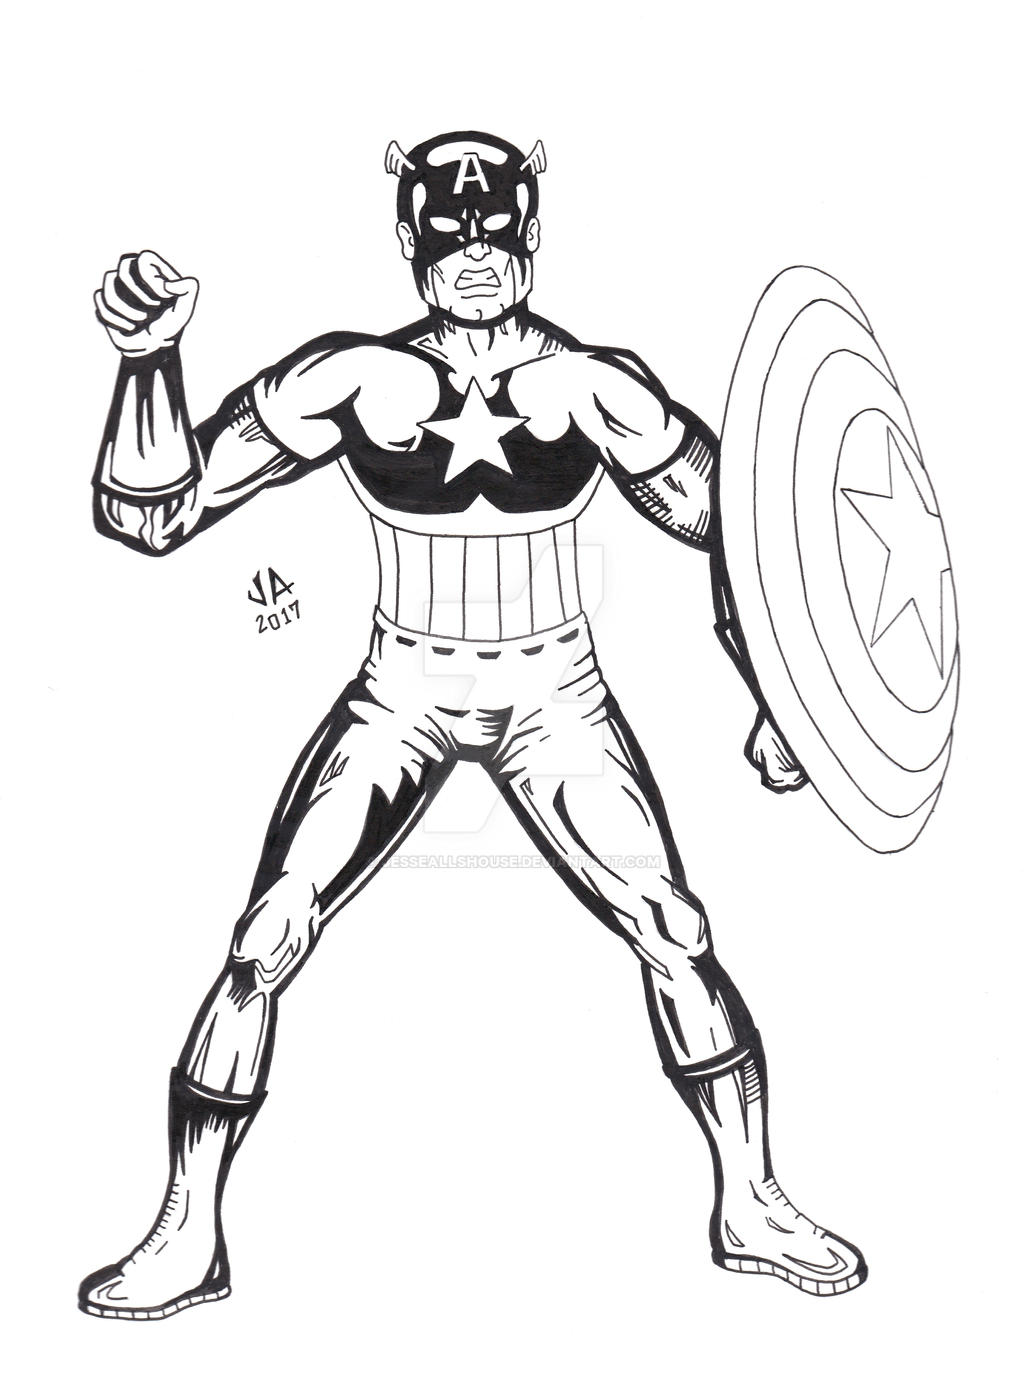 Captain America Pen and Ink